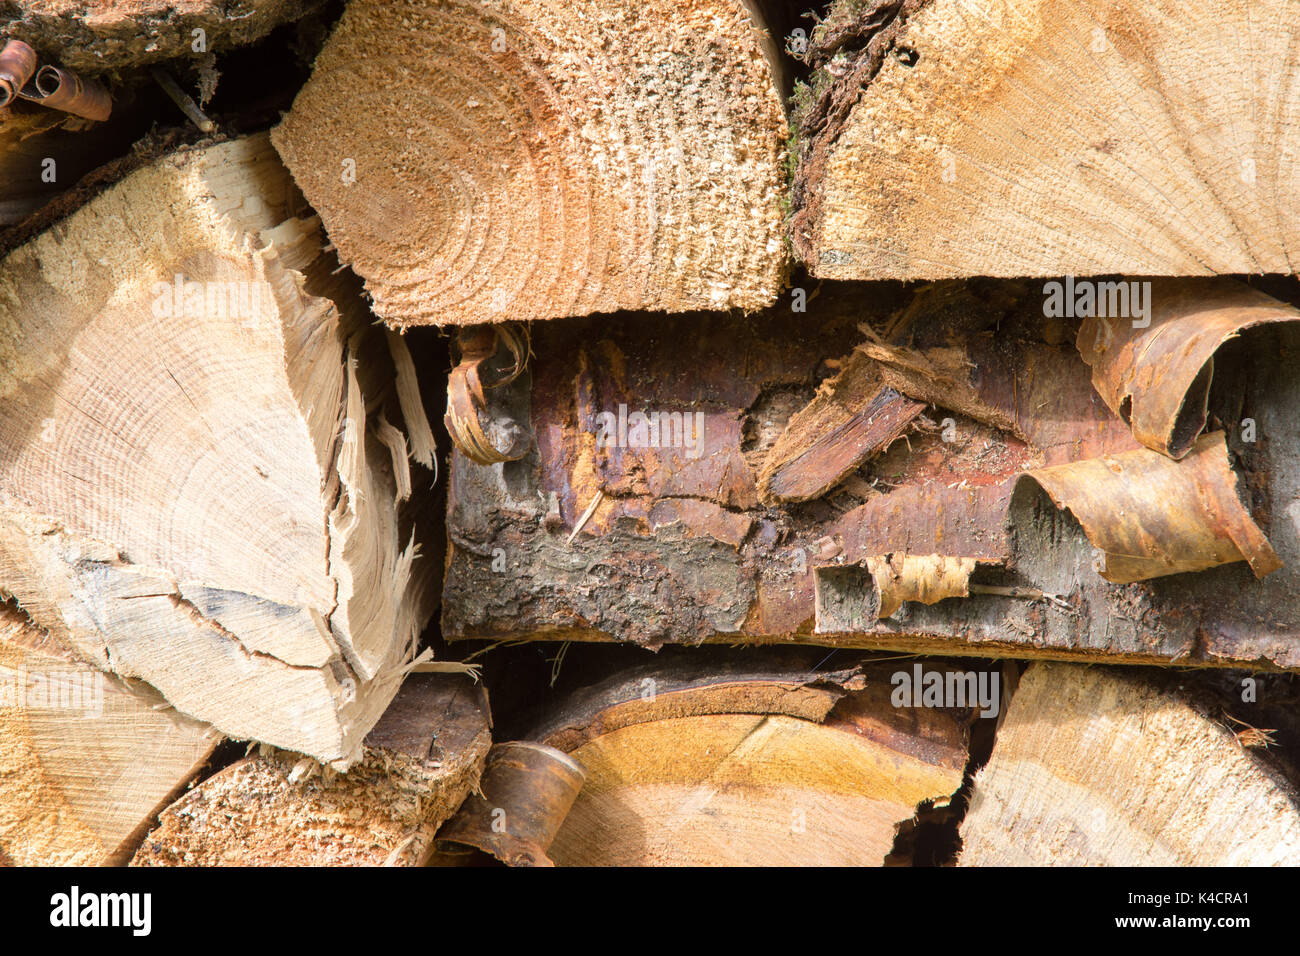 Freshly split and stacked logwood (firewood) Mainly hardwood. Renewable fuel source. 42 images photographed from a range of distances and angles. - Stock Image